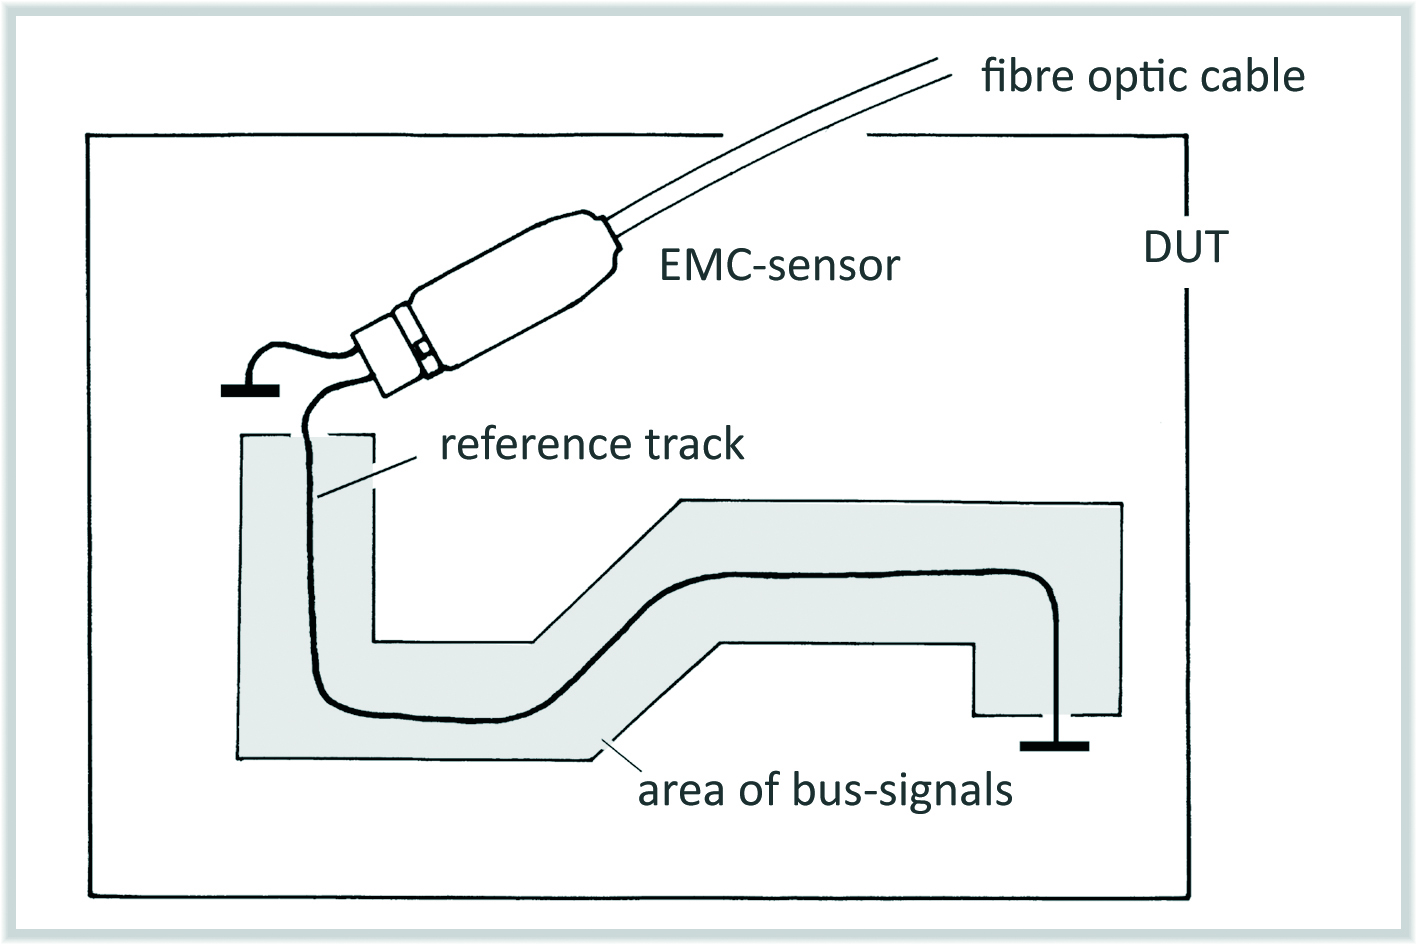 Emc Practice Measurement Under Interference Series Figure 3 13 Comparison Of Basic And Circuits Measuring Voltage Differences Over The Gnd System